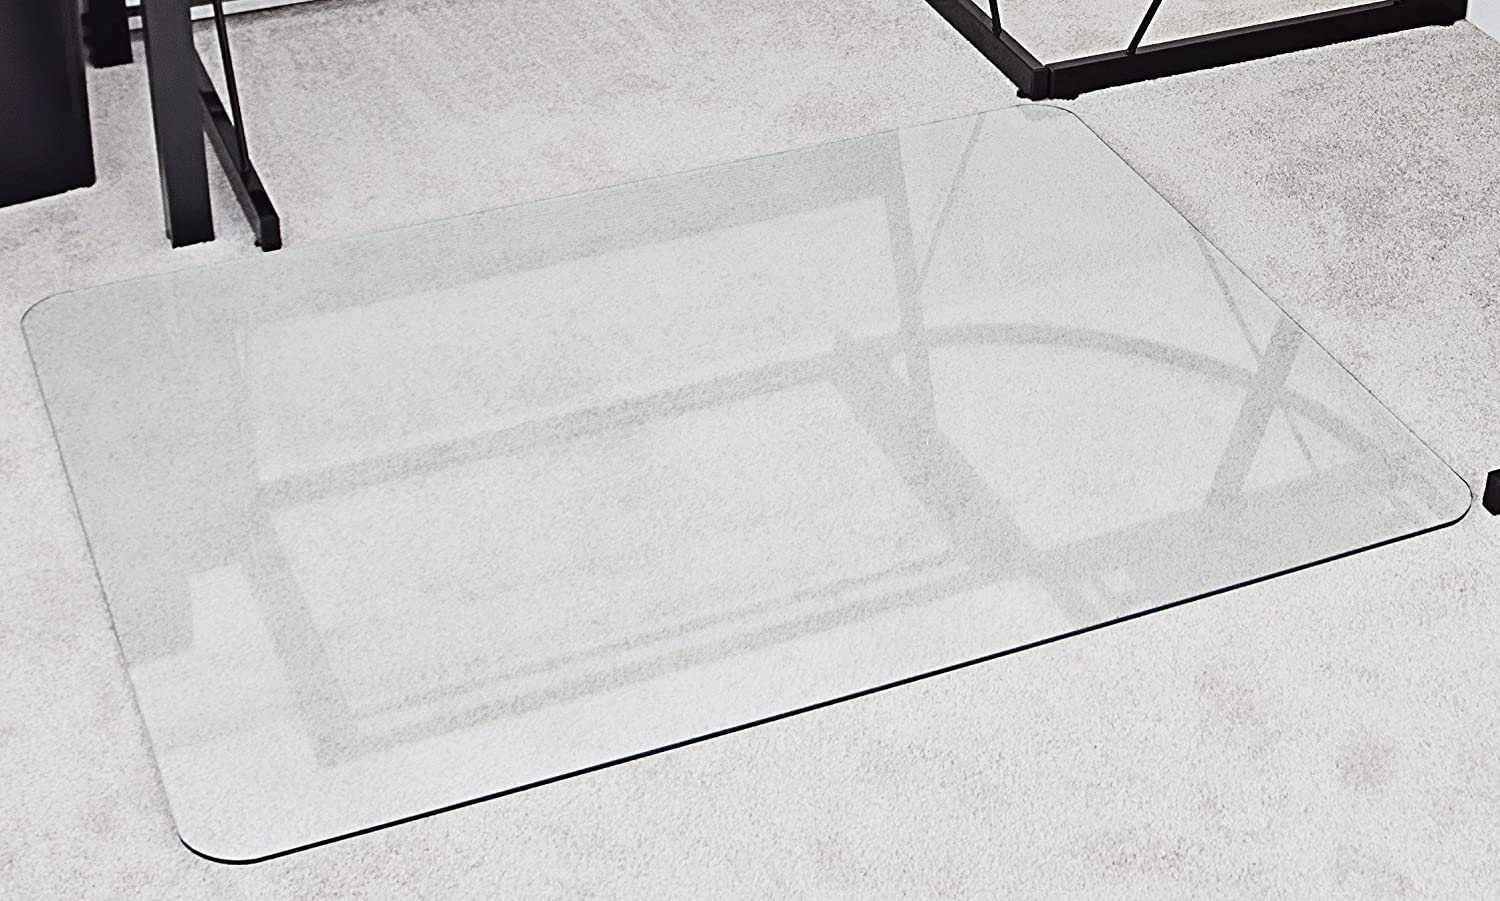 Superbe Amazon.com : MyGlassMat 36 X 48 Inch Tempered Glass Chair Mat For Carpet  And Hard Floors, Rounded Corners, Smooth Polished Edges, 1/4 Inch Thick, ...